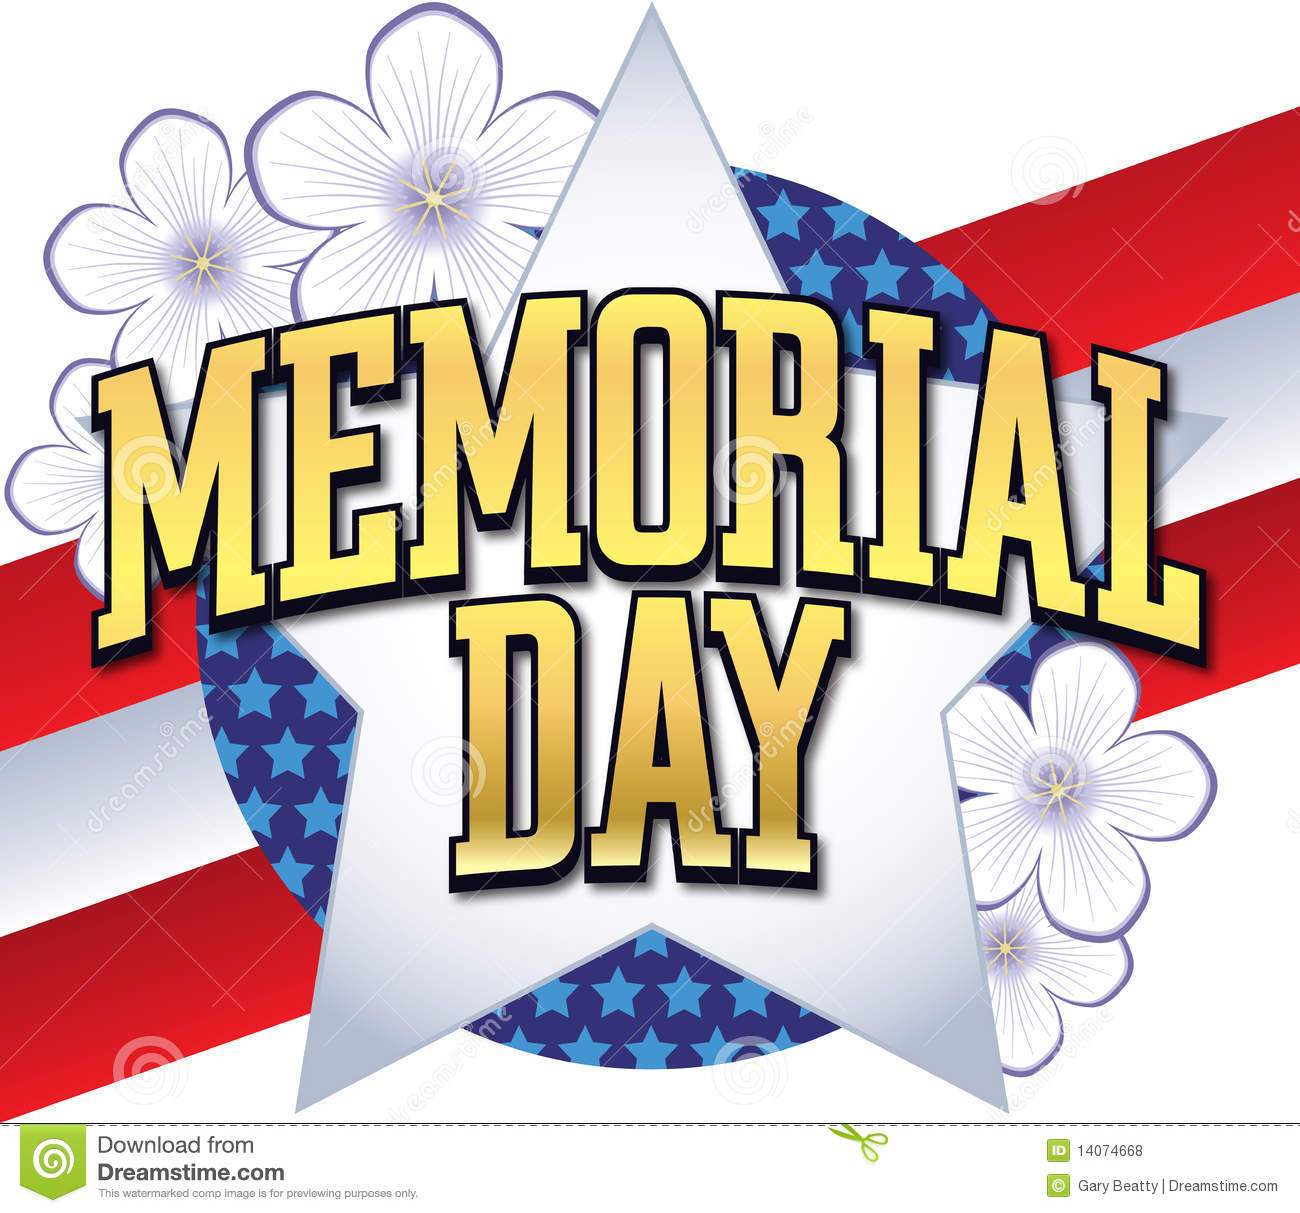 Watermark memorial day clipart clipart transparent stock Memorial day banner clipart clipart suggest - Clipartable.com clipart transparent stock